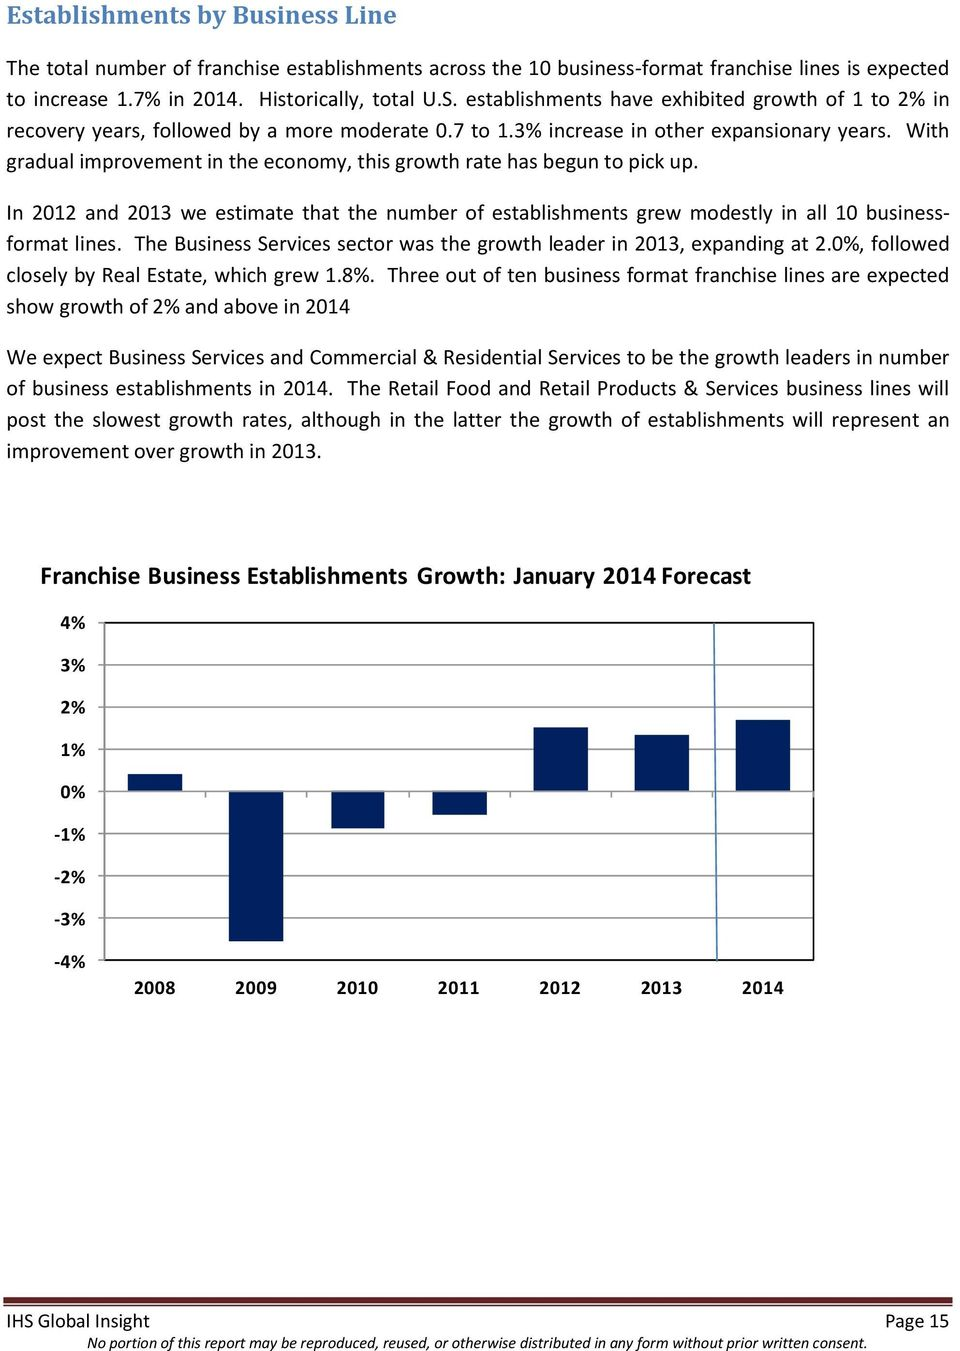 With gradual improvement in the economy, this growth rate has begun to pick up. In 2012 and 2013 we estimate that the number of establishments grew modestly in all 10 businessformat lines.